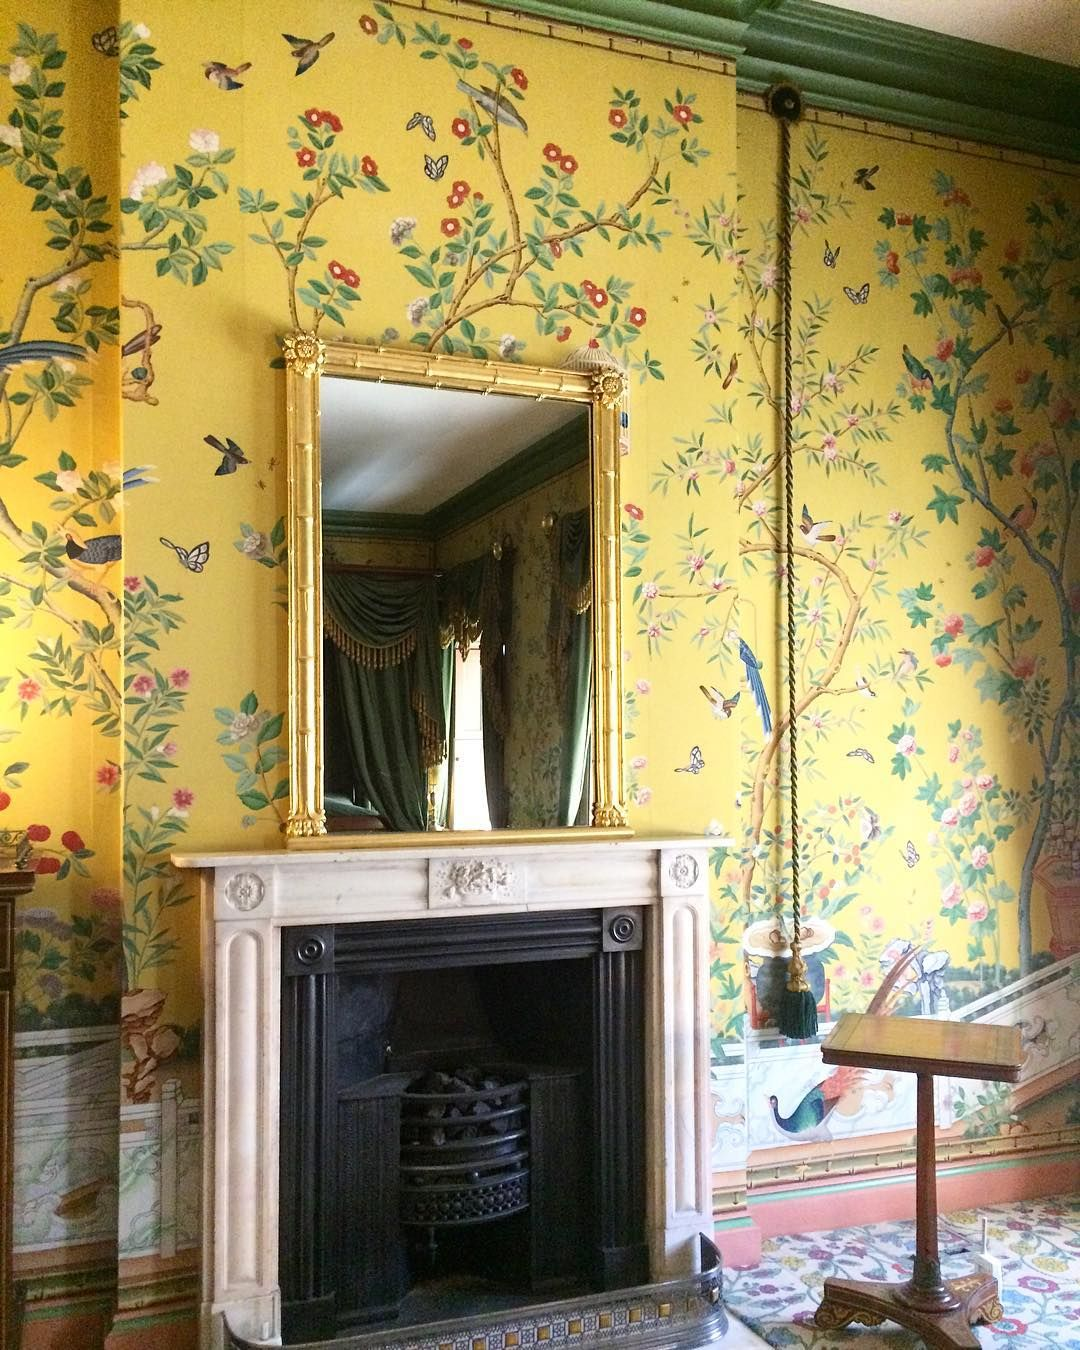 Queen victorias apartment at the royal pavilion in brighton england chinoiserie wallpaper